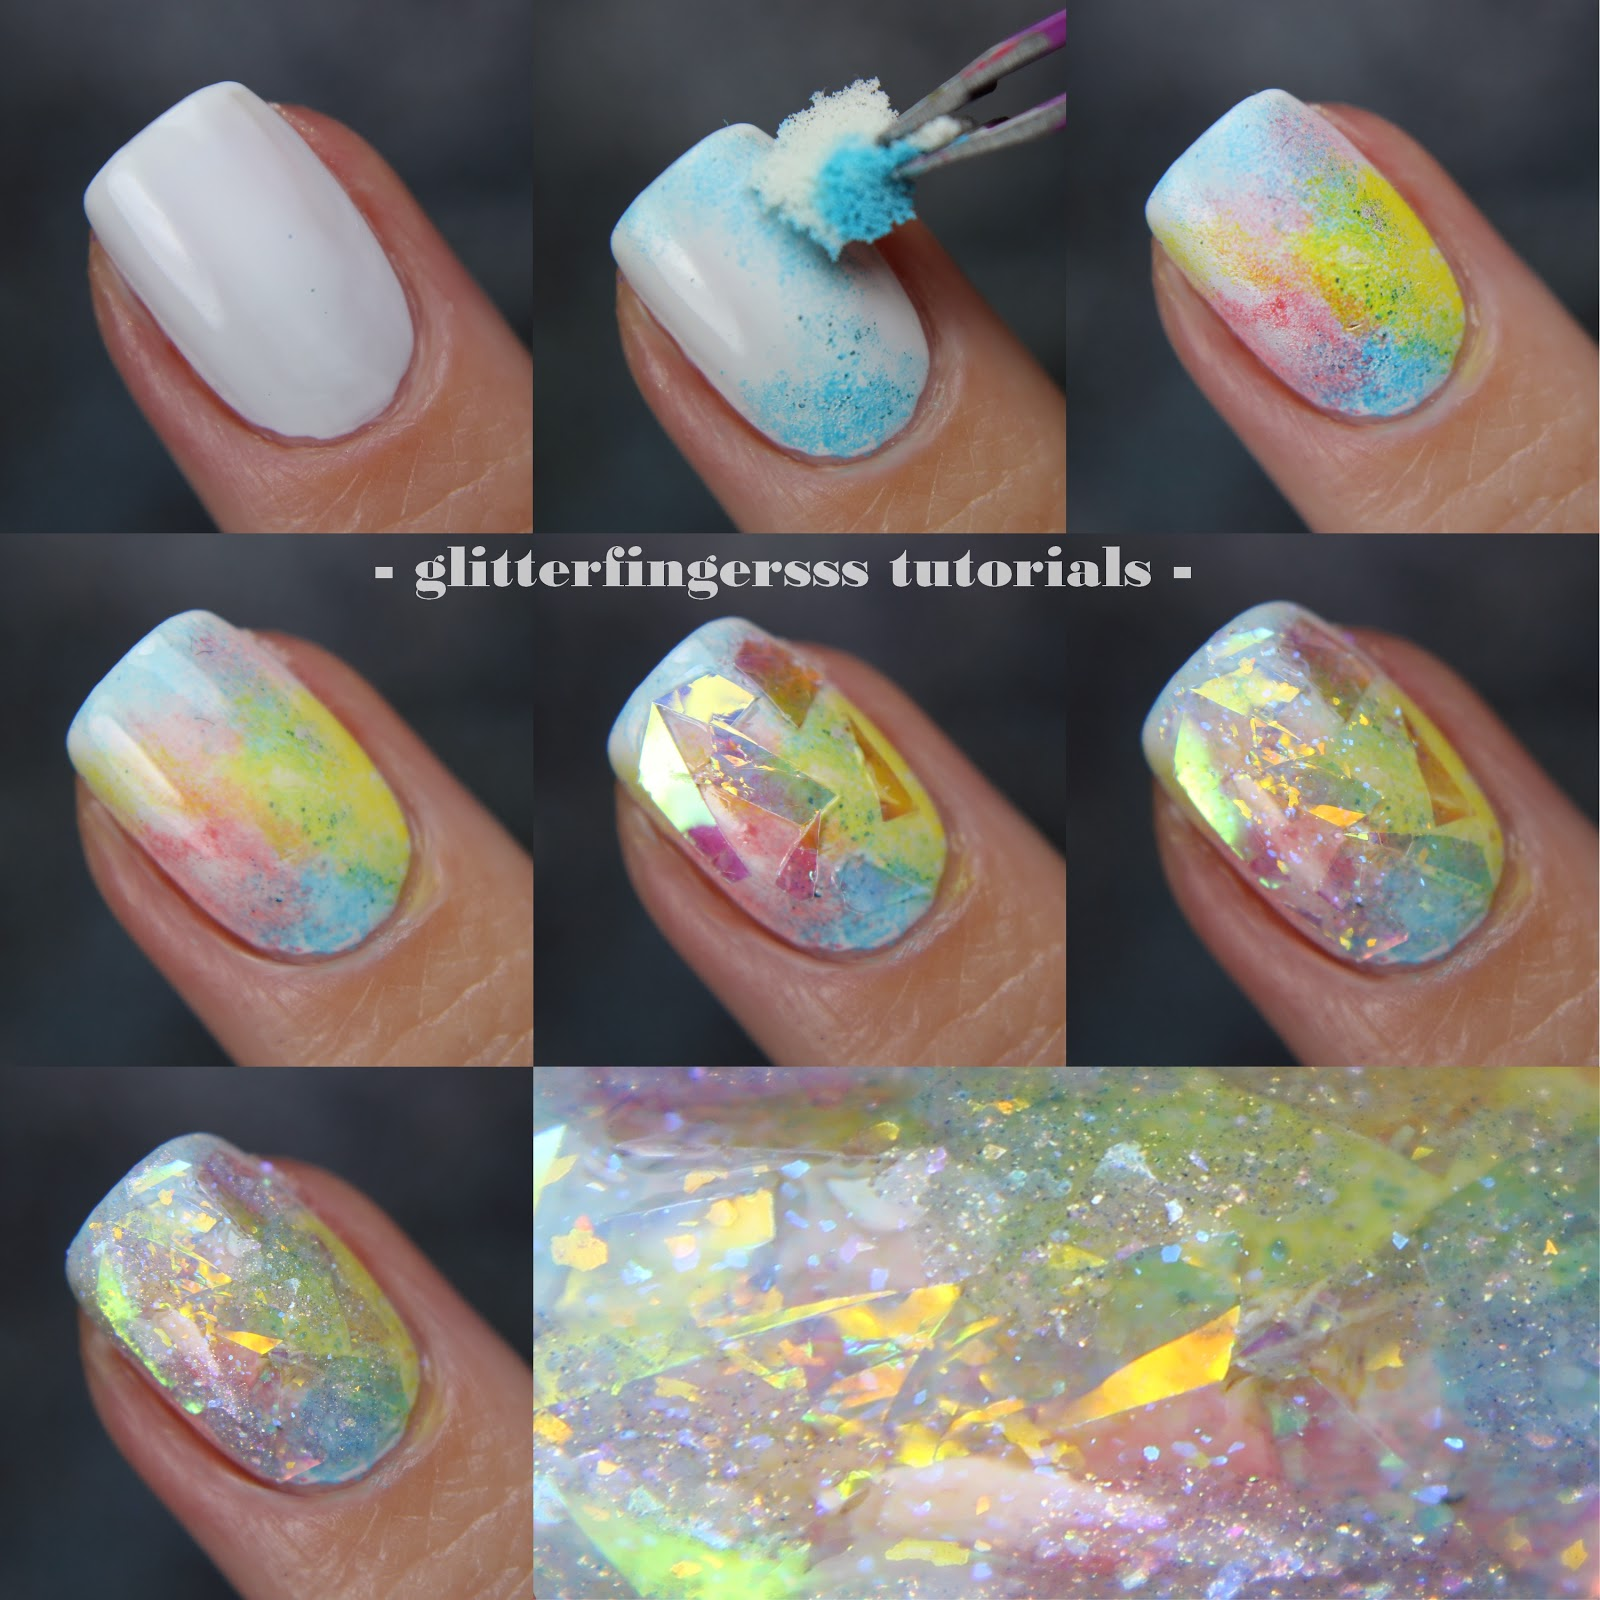 10 fun nail art ideas if you have short nails simplemost opal nails tutorial prinsesfo Choice Image